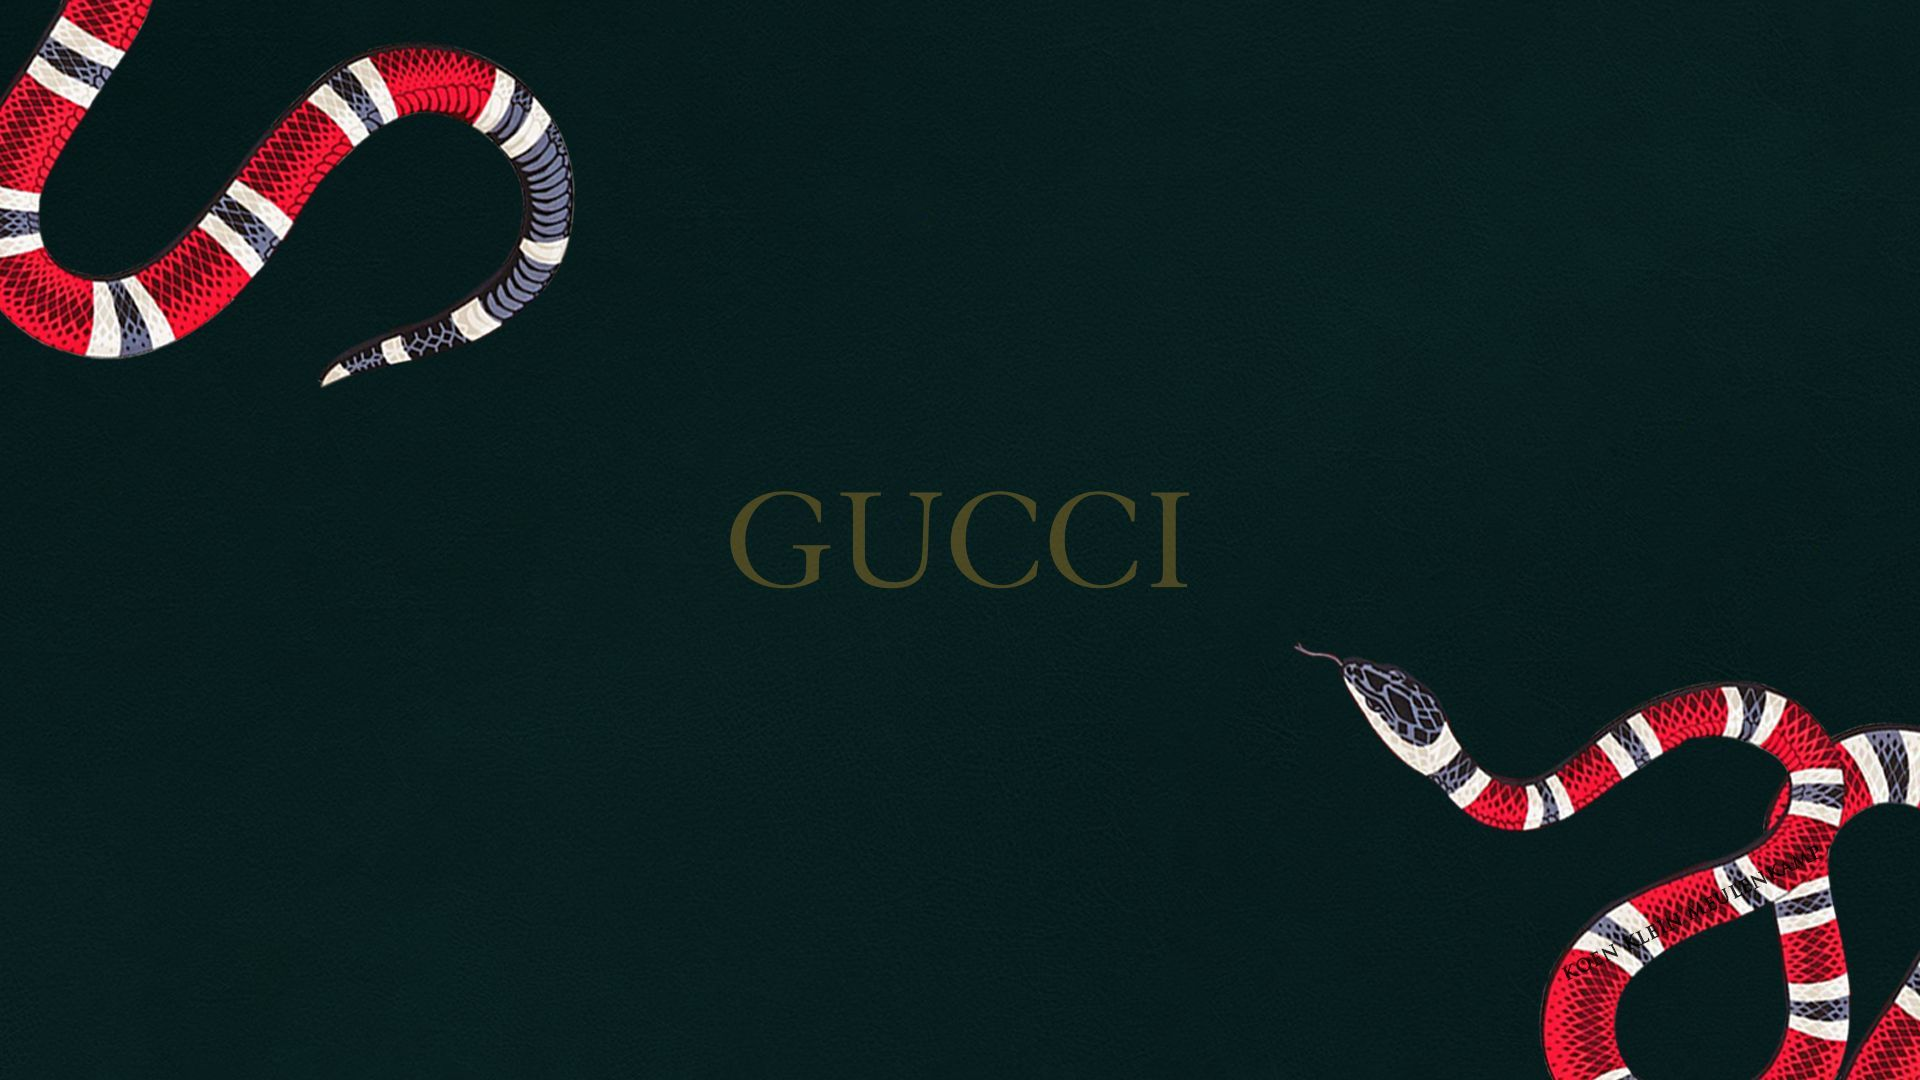 Gucci Snake Wallpapers , Top Free Gucci Snake Backgrounds